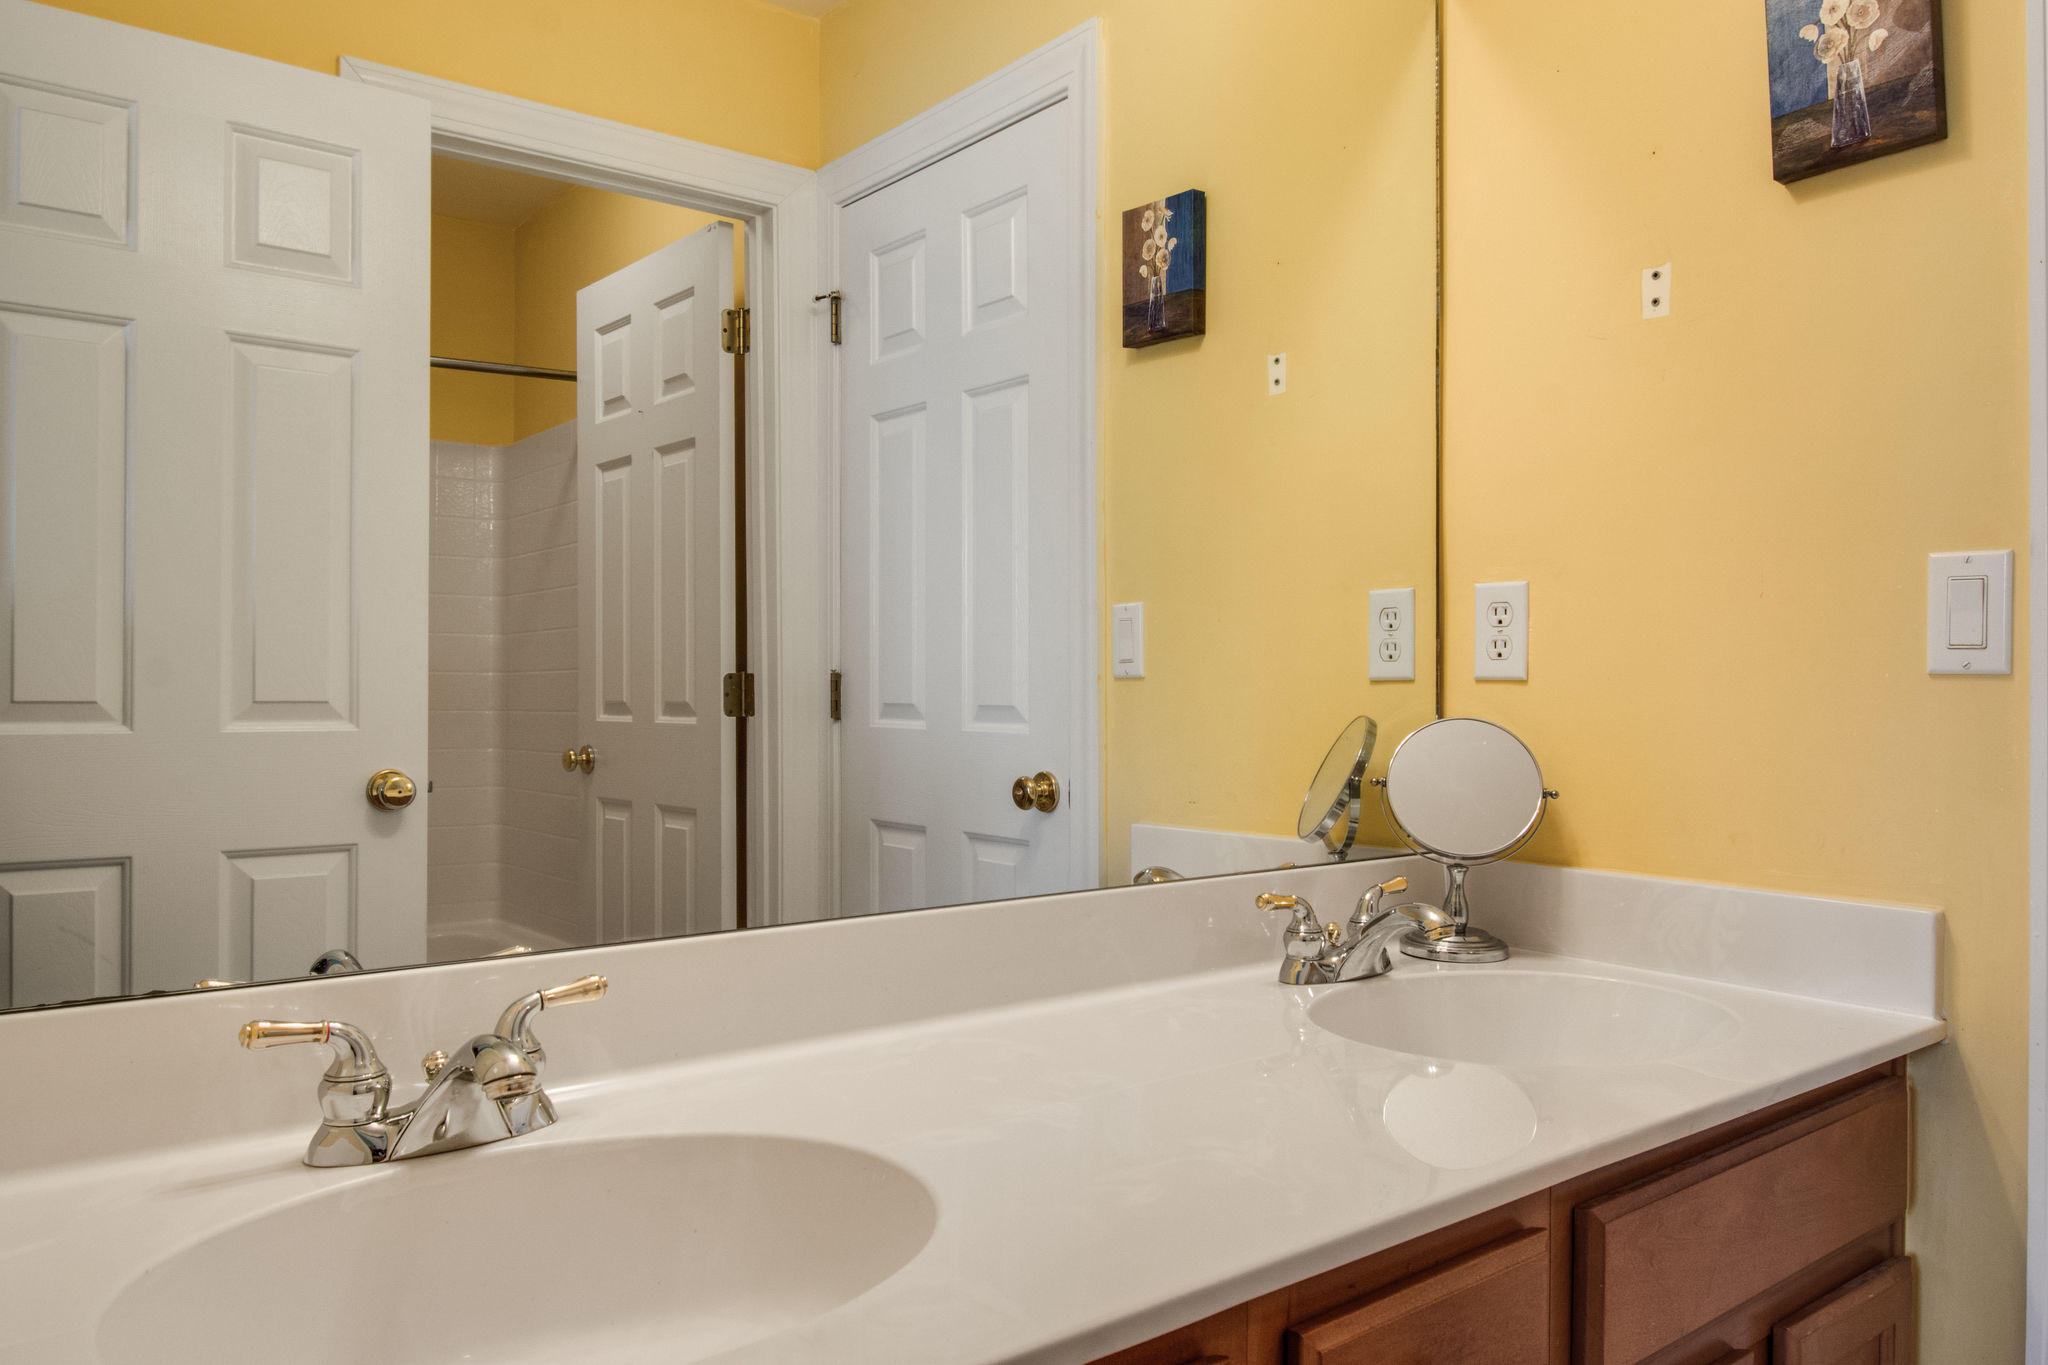 Rivertowne On The Wando Homes For Sale - 2226 Marsh, Mount Pleasant, SC - 36